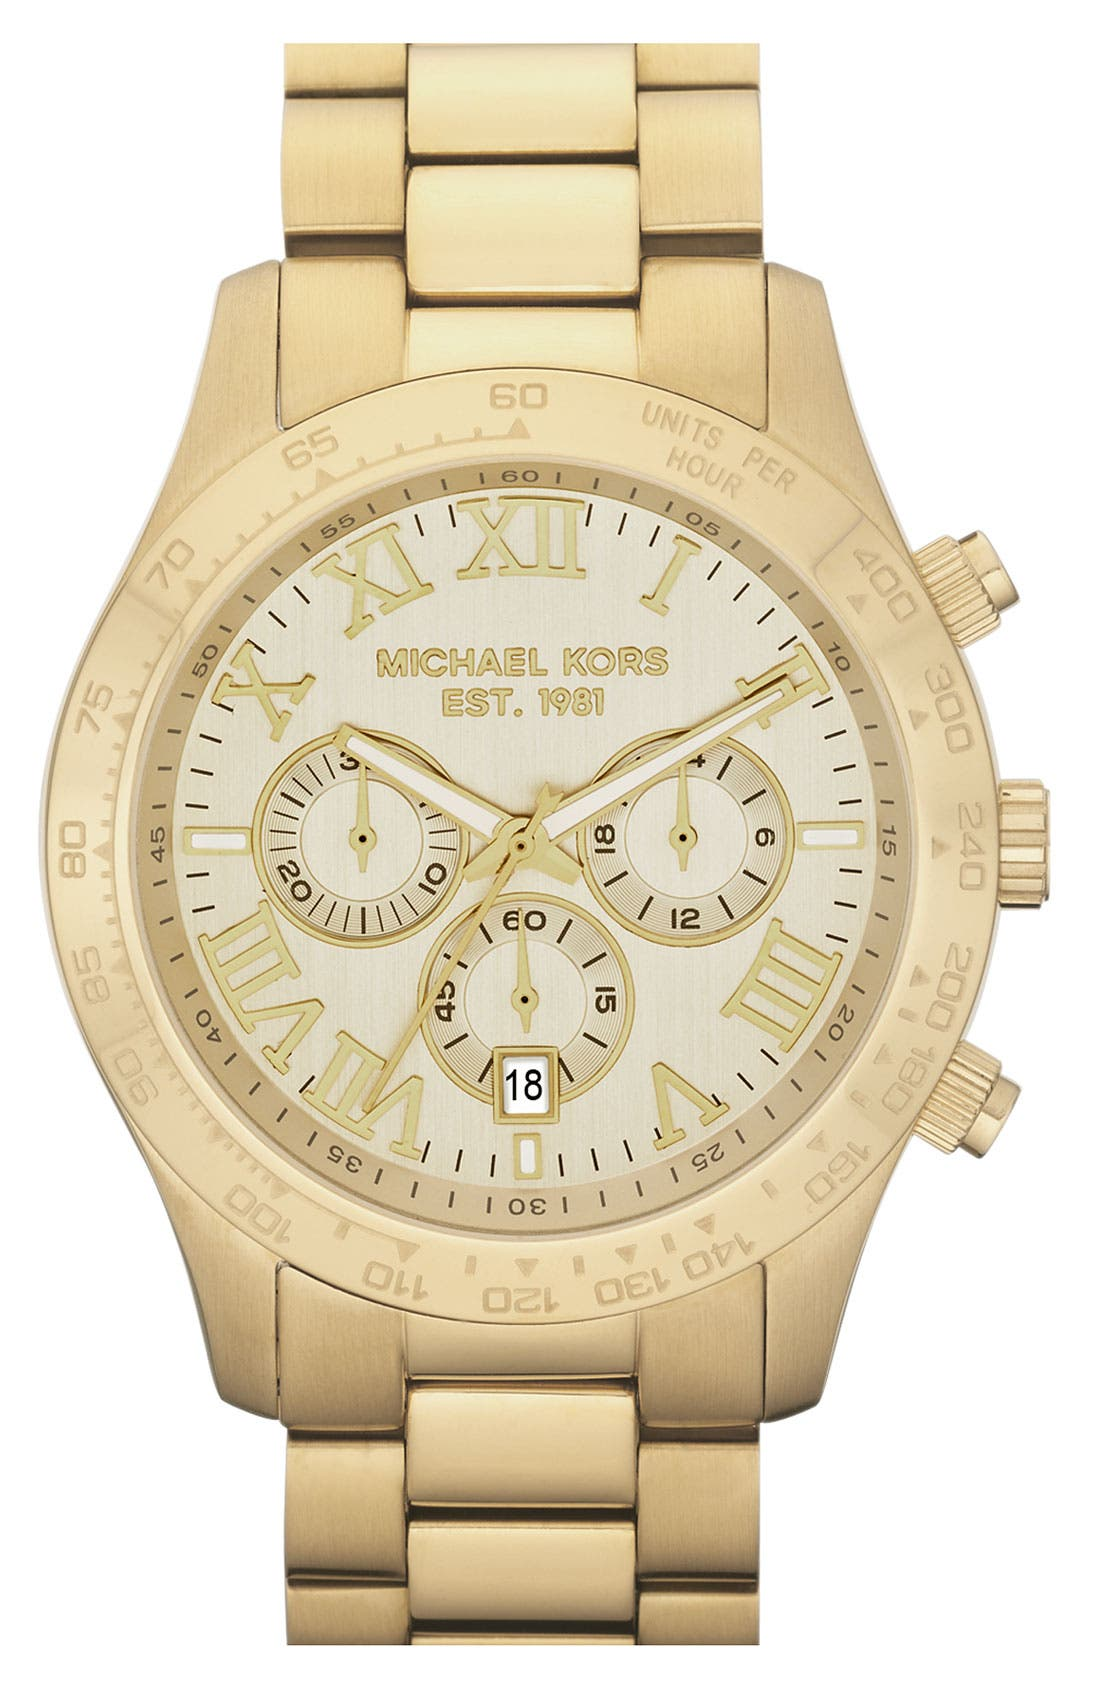 Main Image - Michael Kors 'Large Layton' Chronograph Watch, 45mm